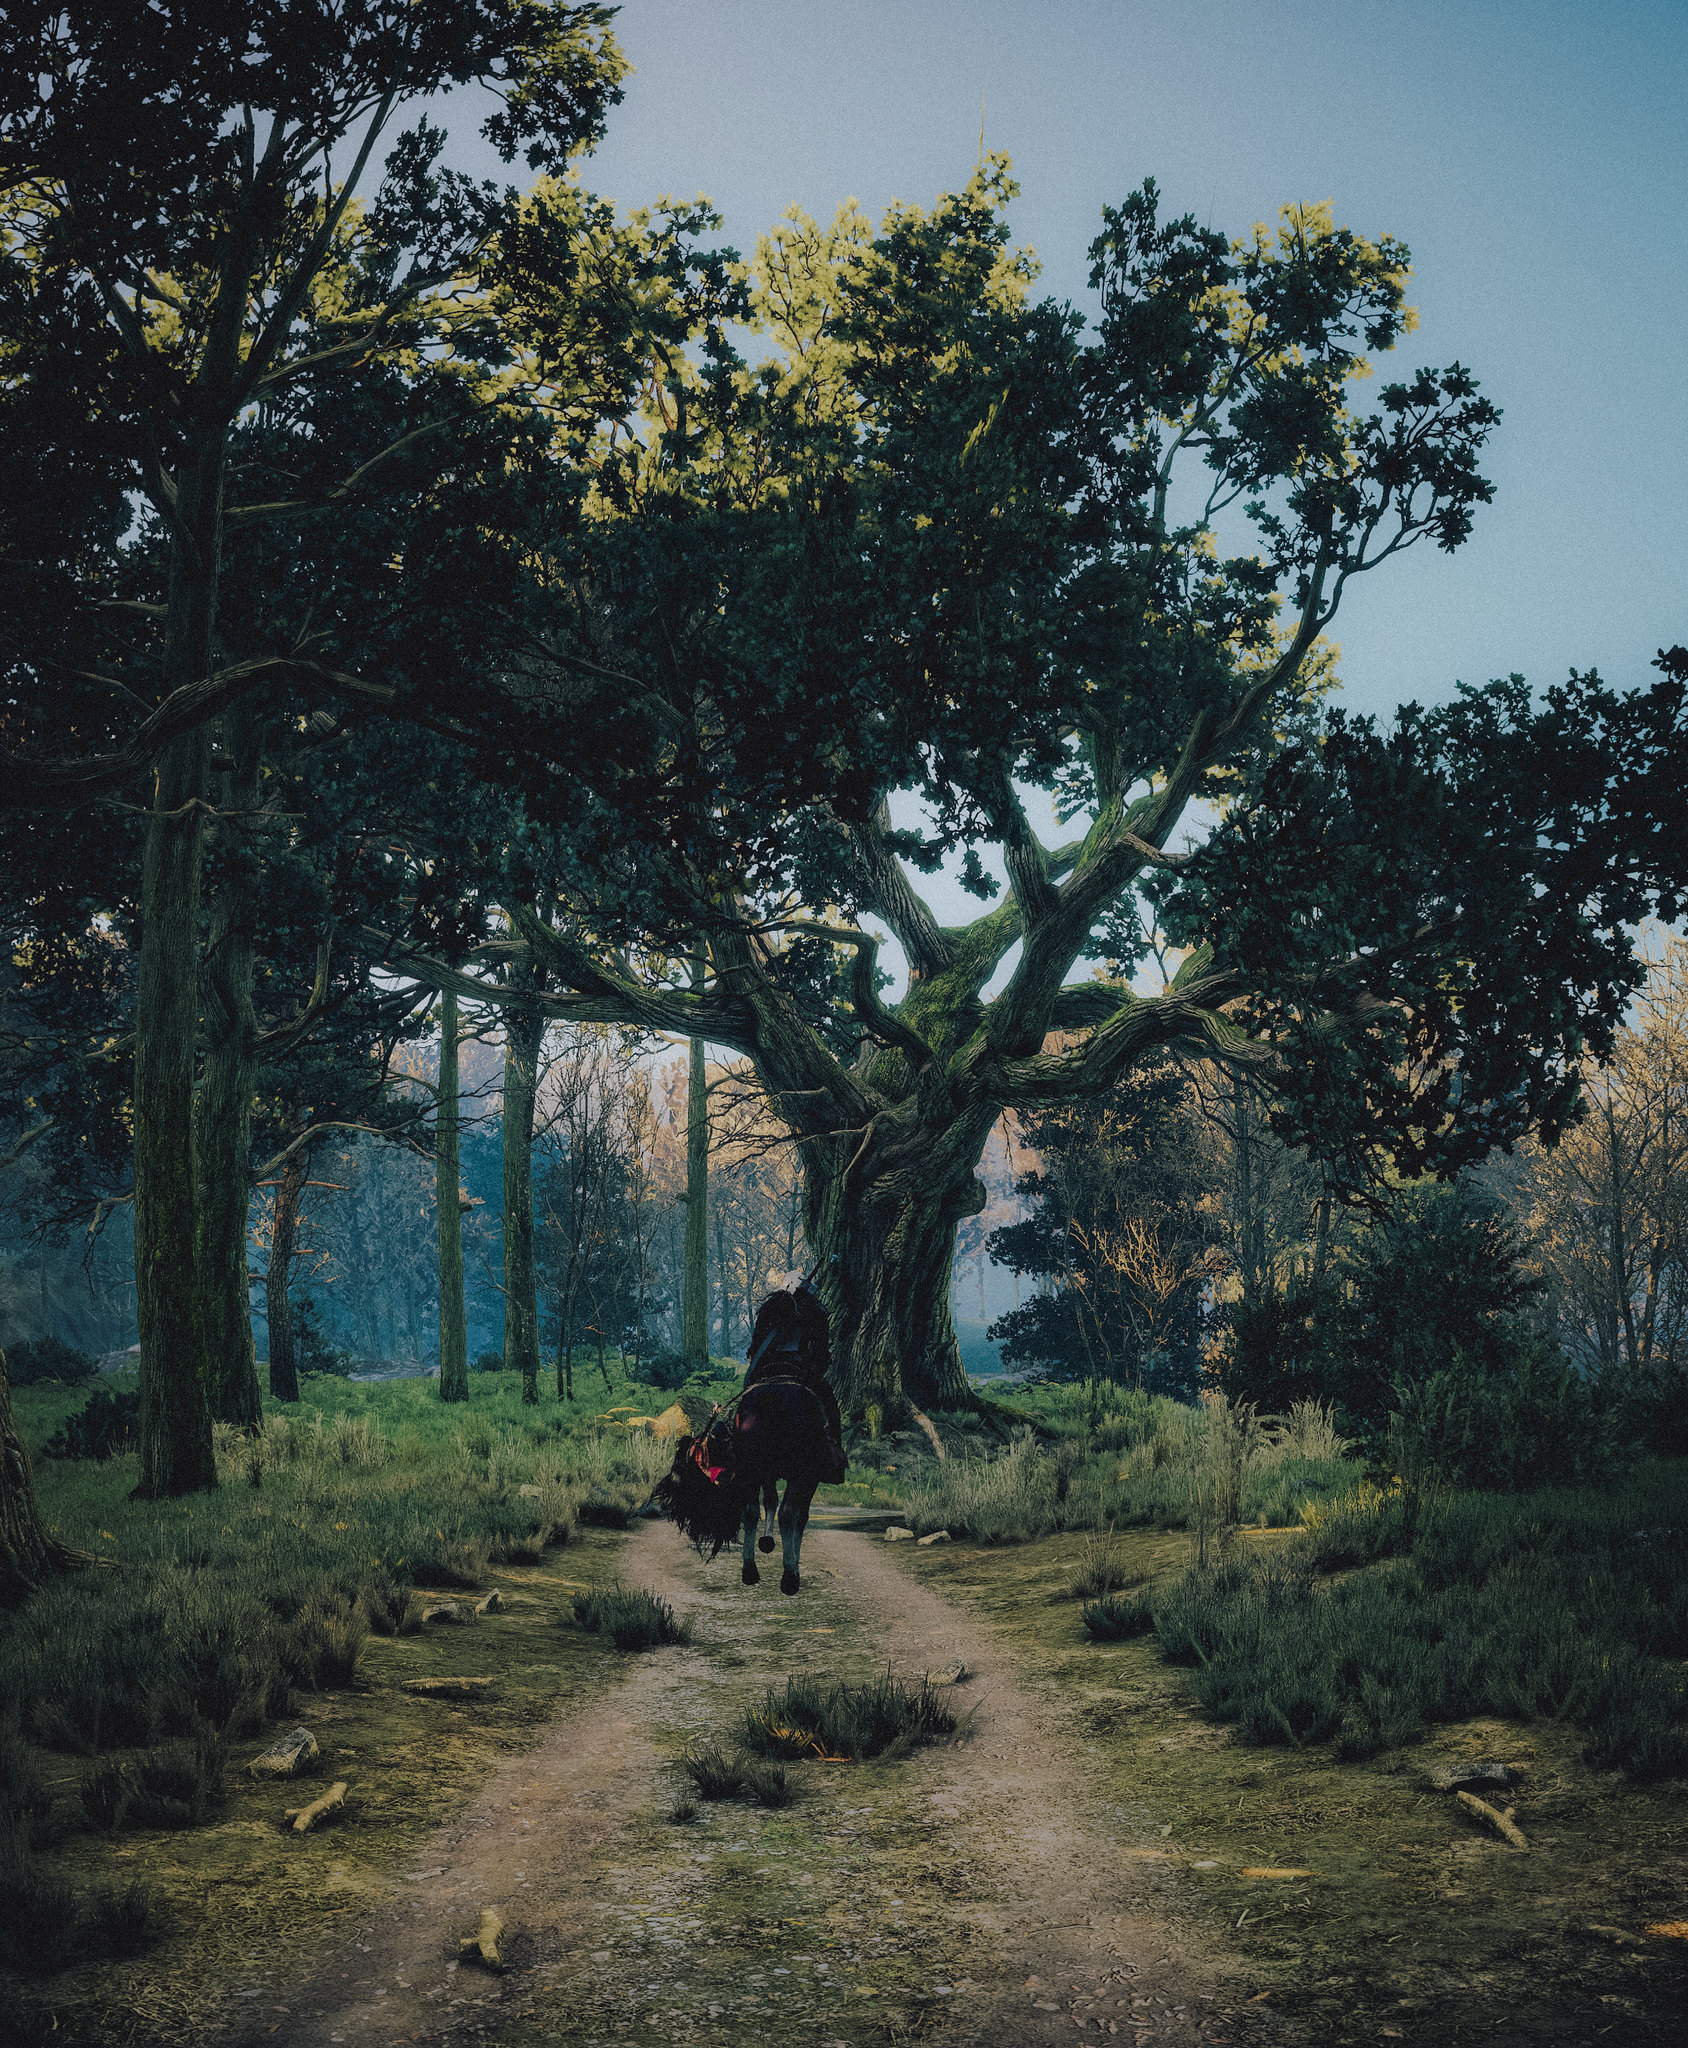 18707559721_8d6106e8d7_k.jpg - The Witcher 3: Wild Hunt